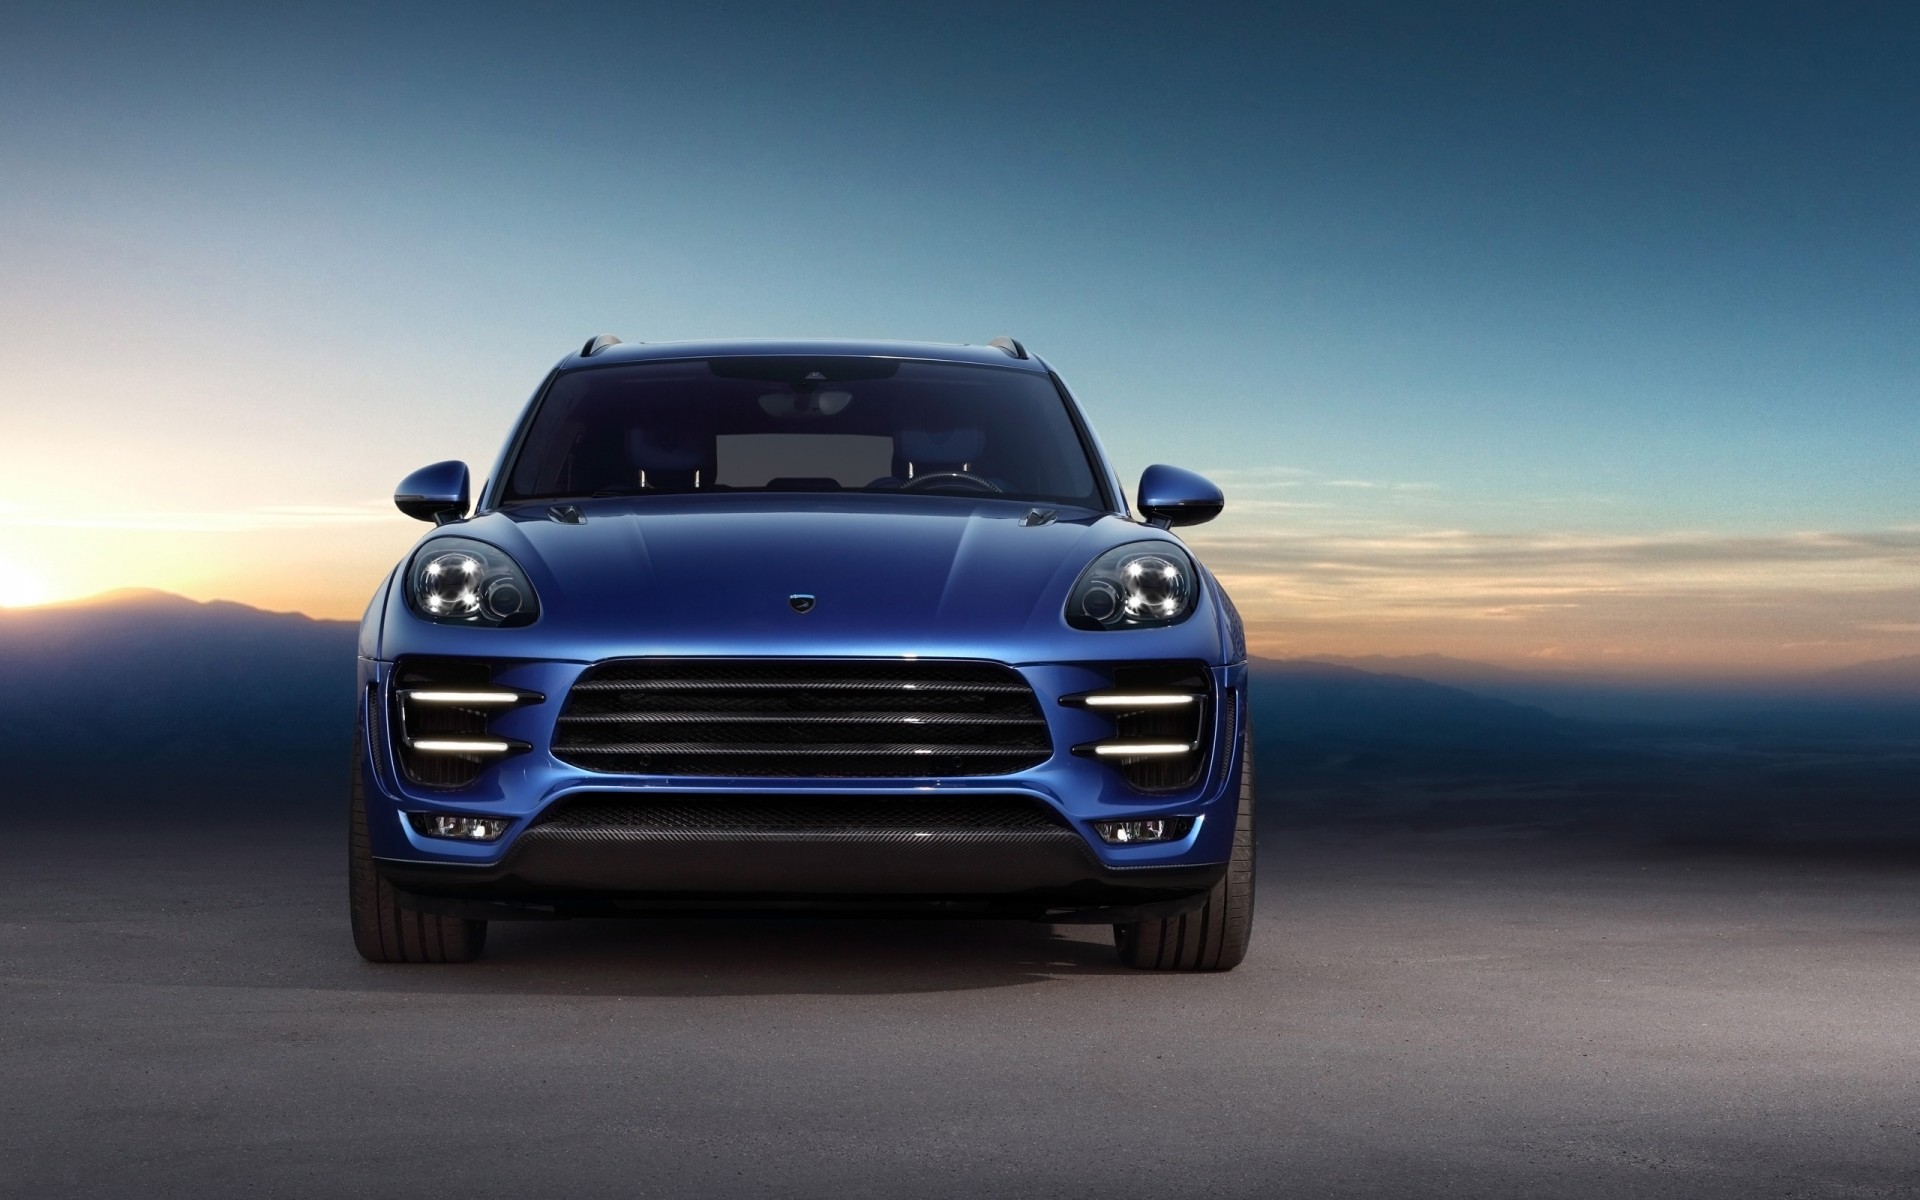 2014 Topcar Porsche Macan Ursa Wallpaper Hd Car